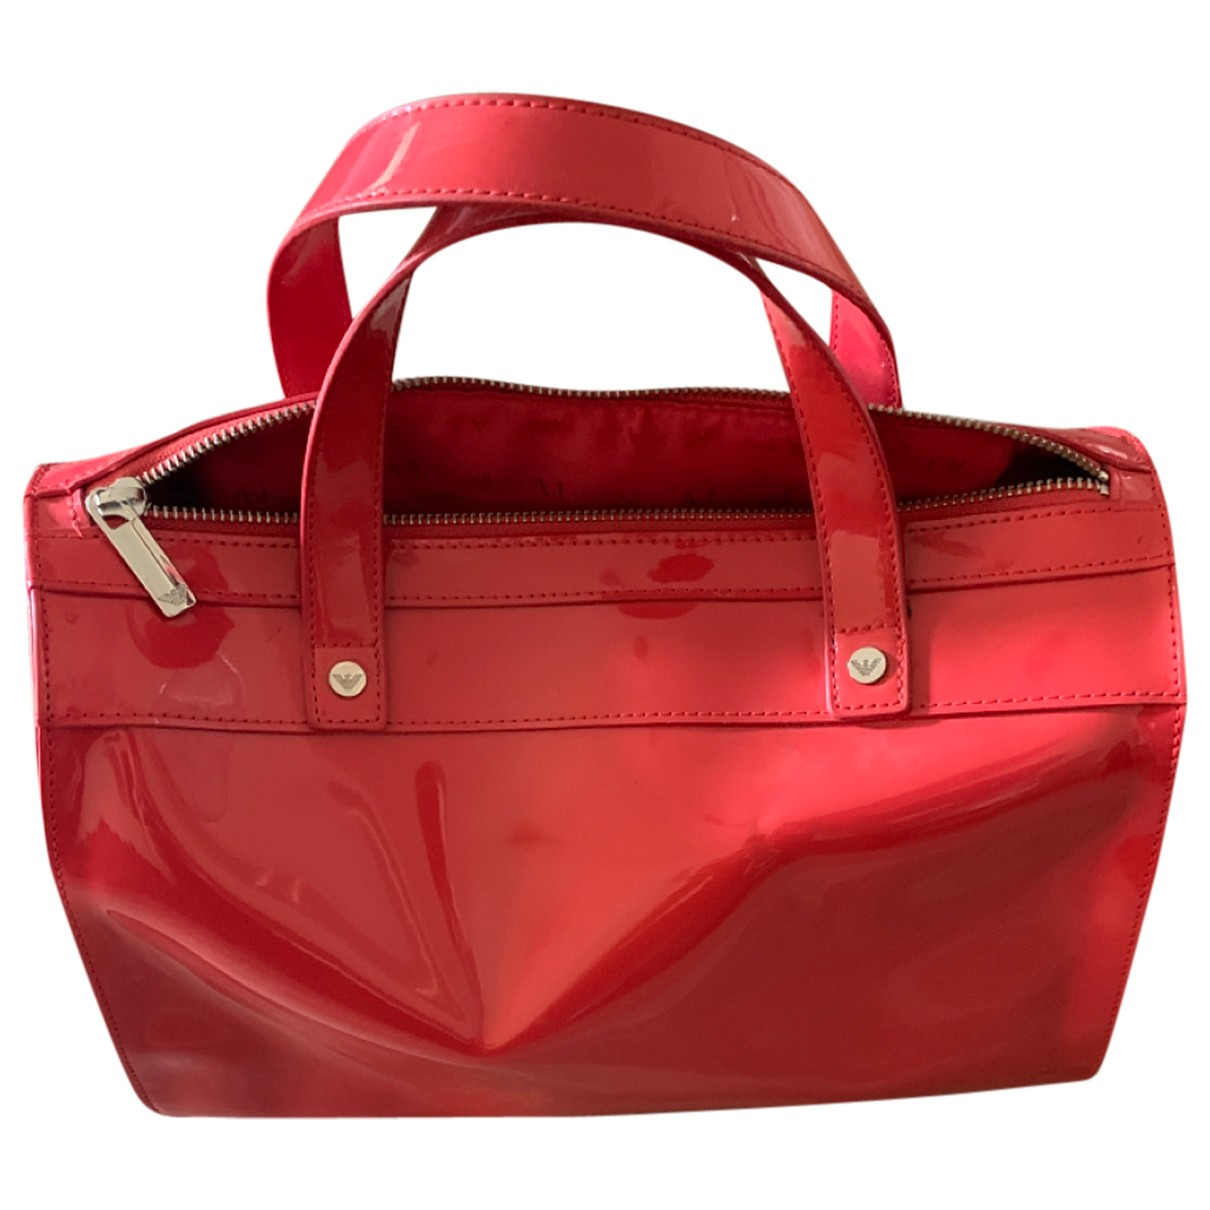 Armani Jeans \N Handtasche in  Rot Polyester